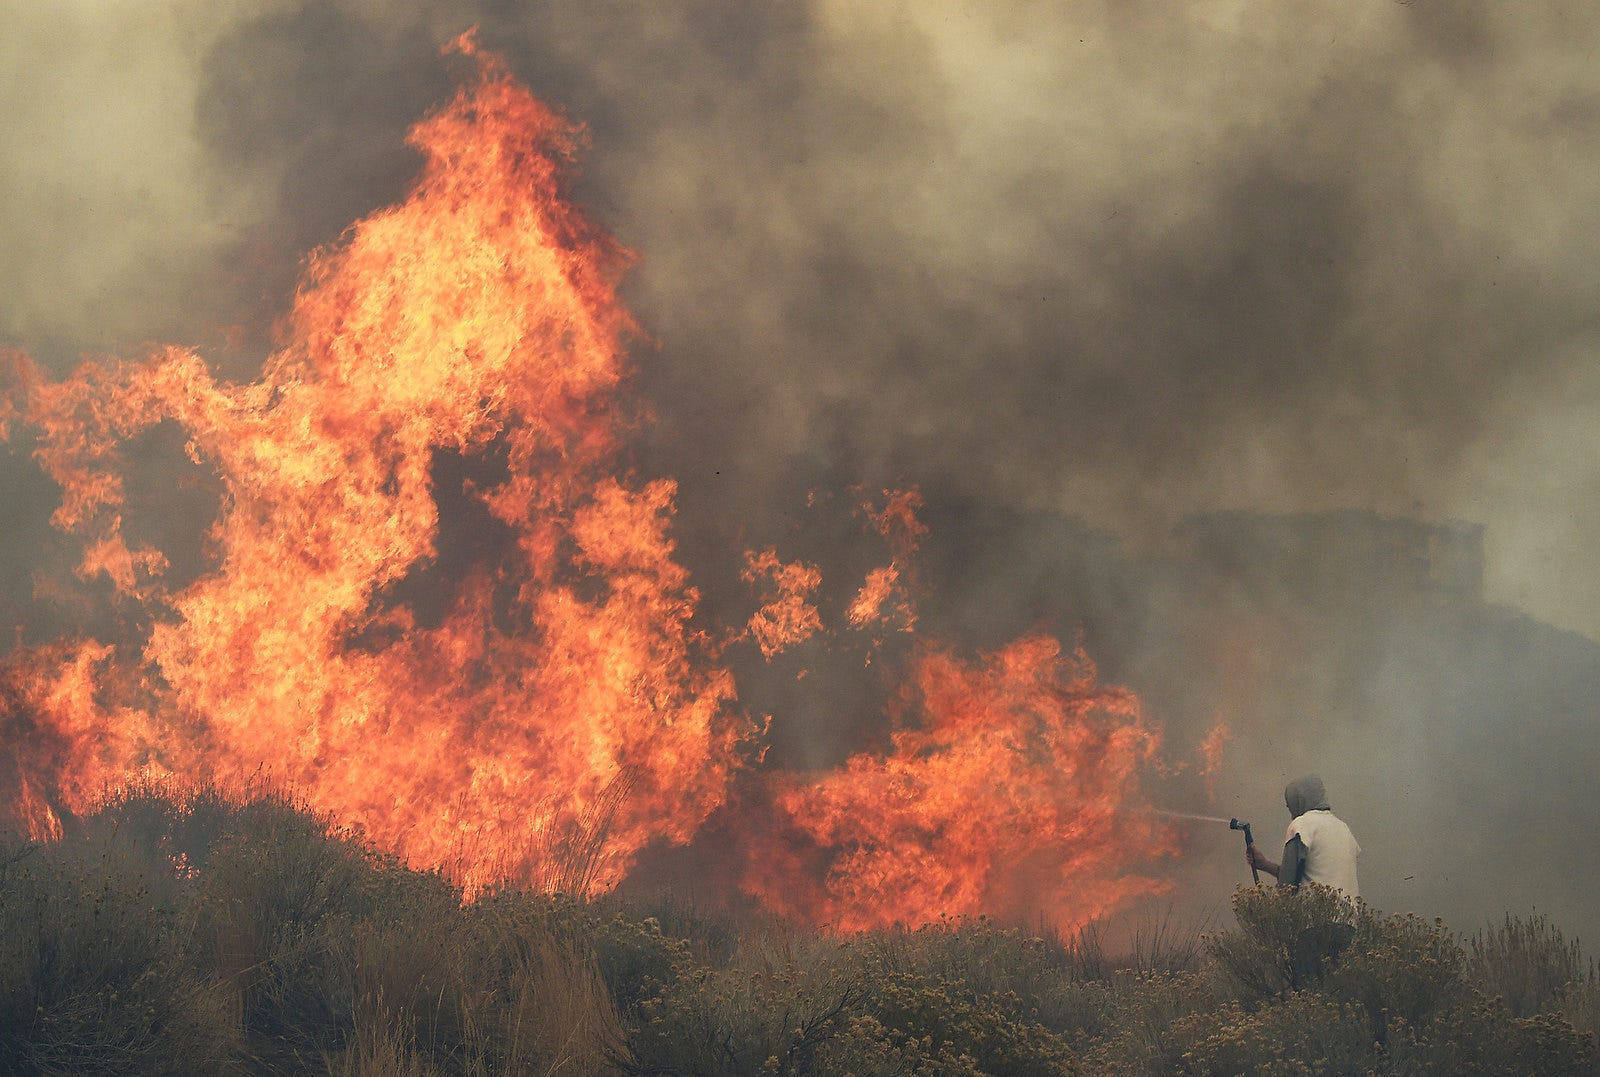 Homeowner Steven Phelps battles the Pinehaven Fire in the Caughlin Ranch area of Reno on Nov. 17, 2020.